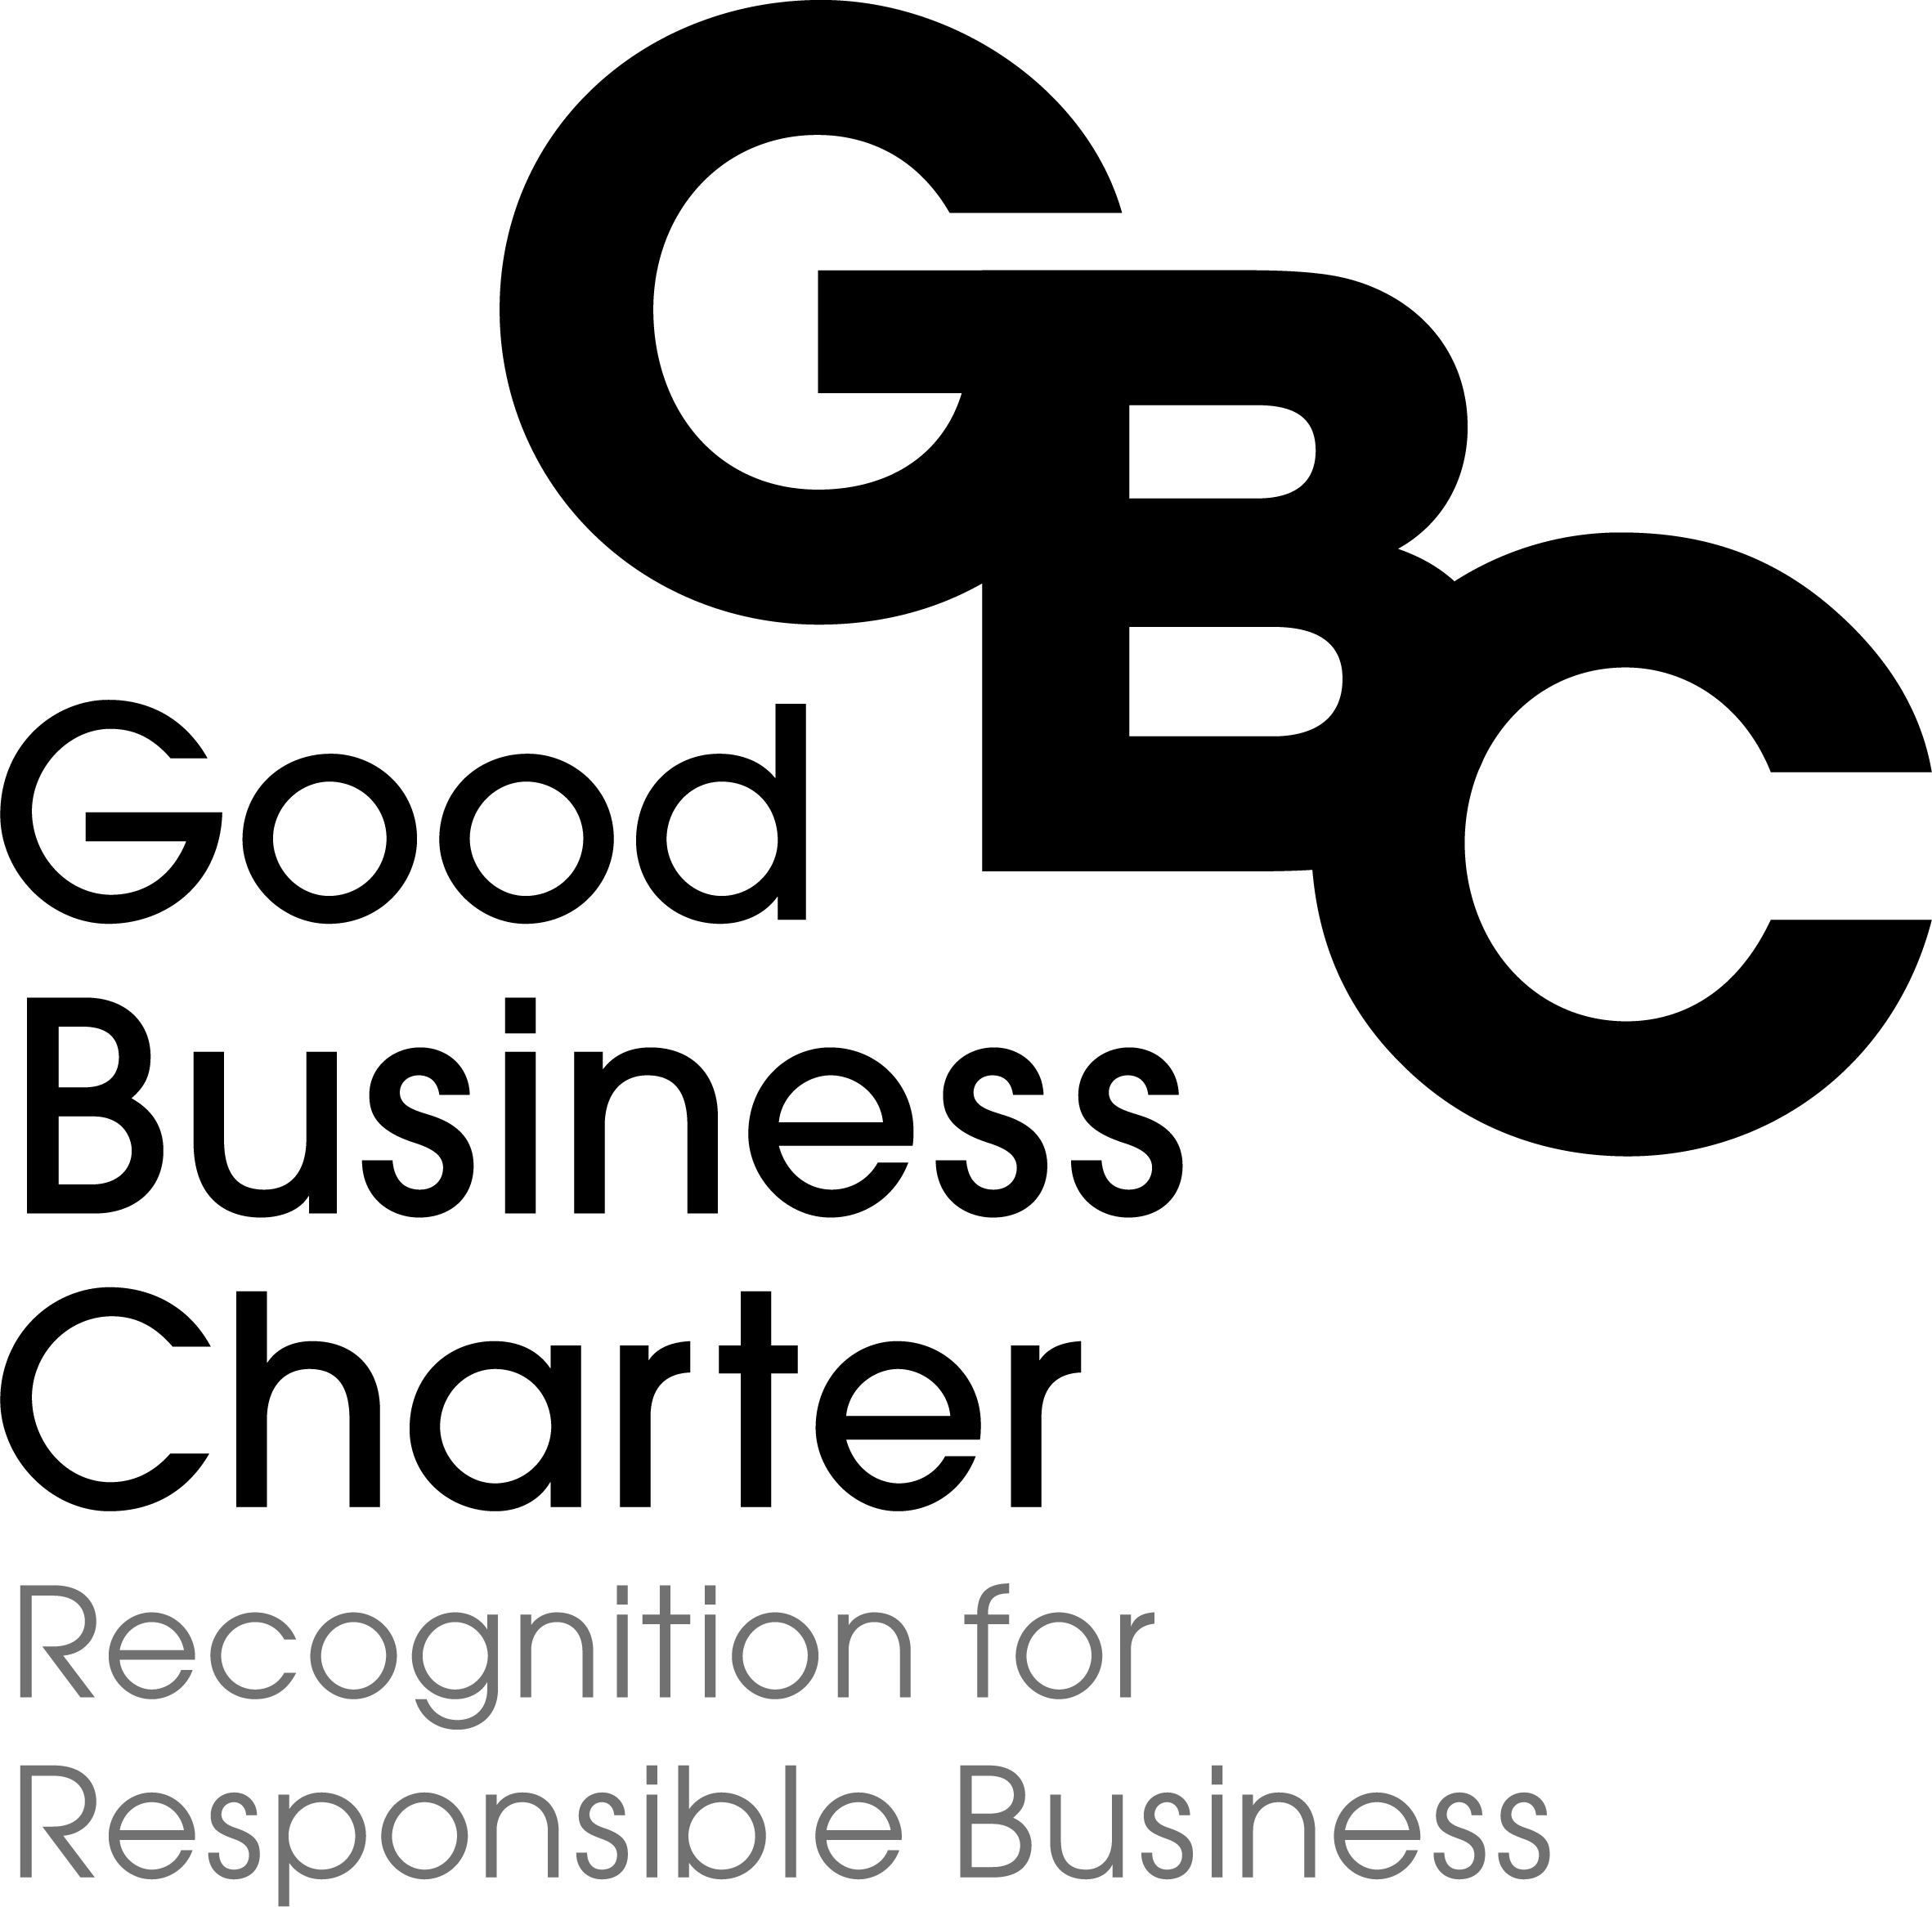 GBC logo and strapline